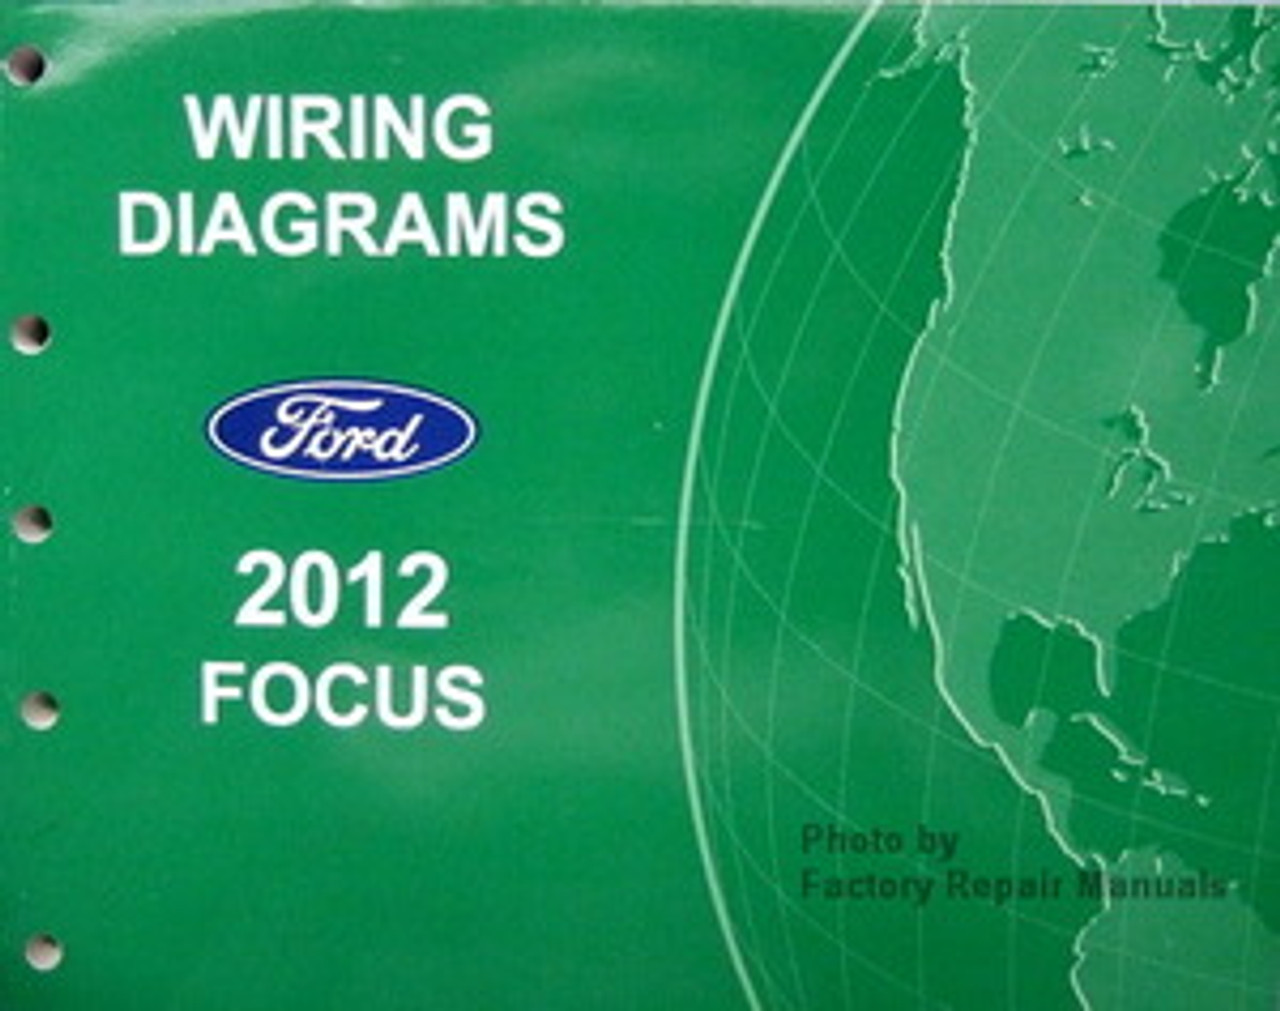 2012 Ford Focus Electrical Wiring Diagrams